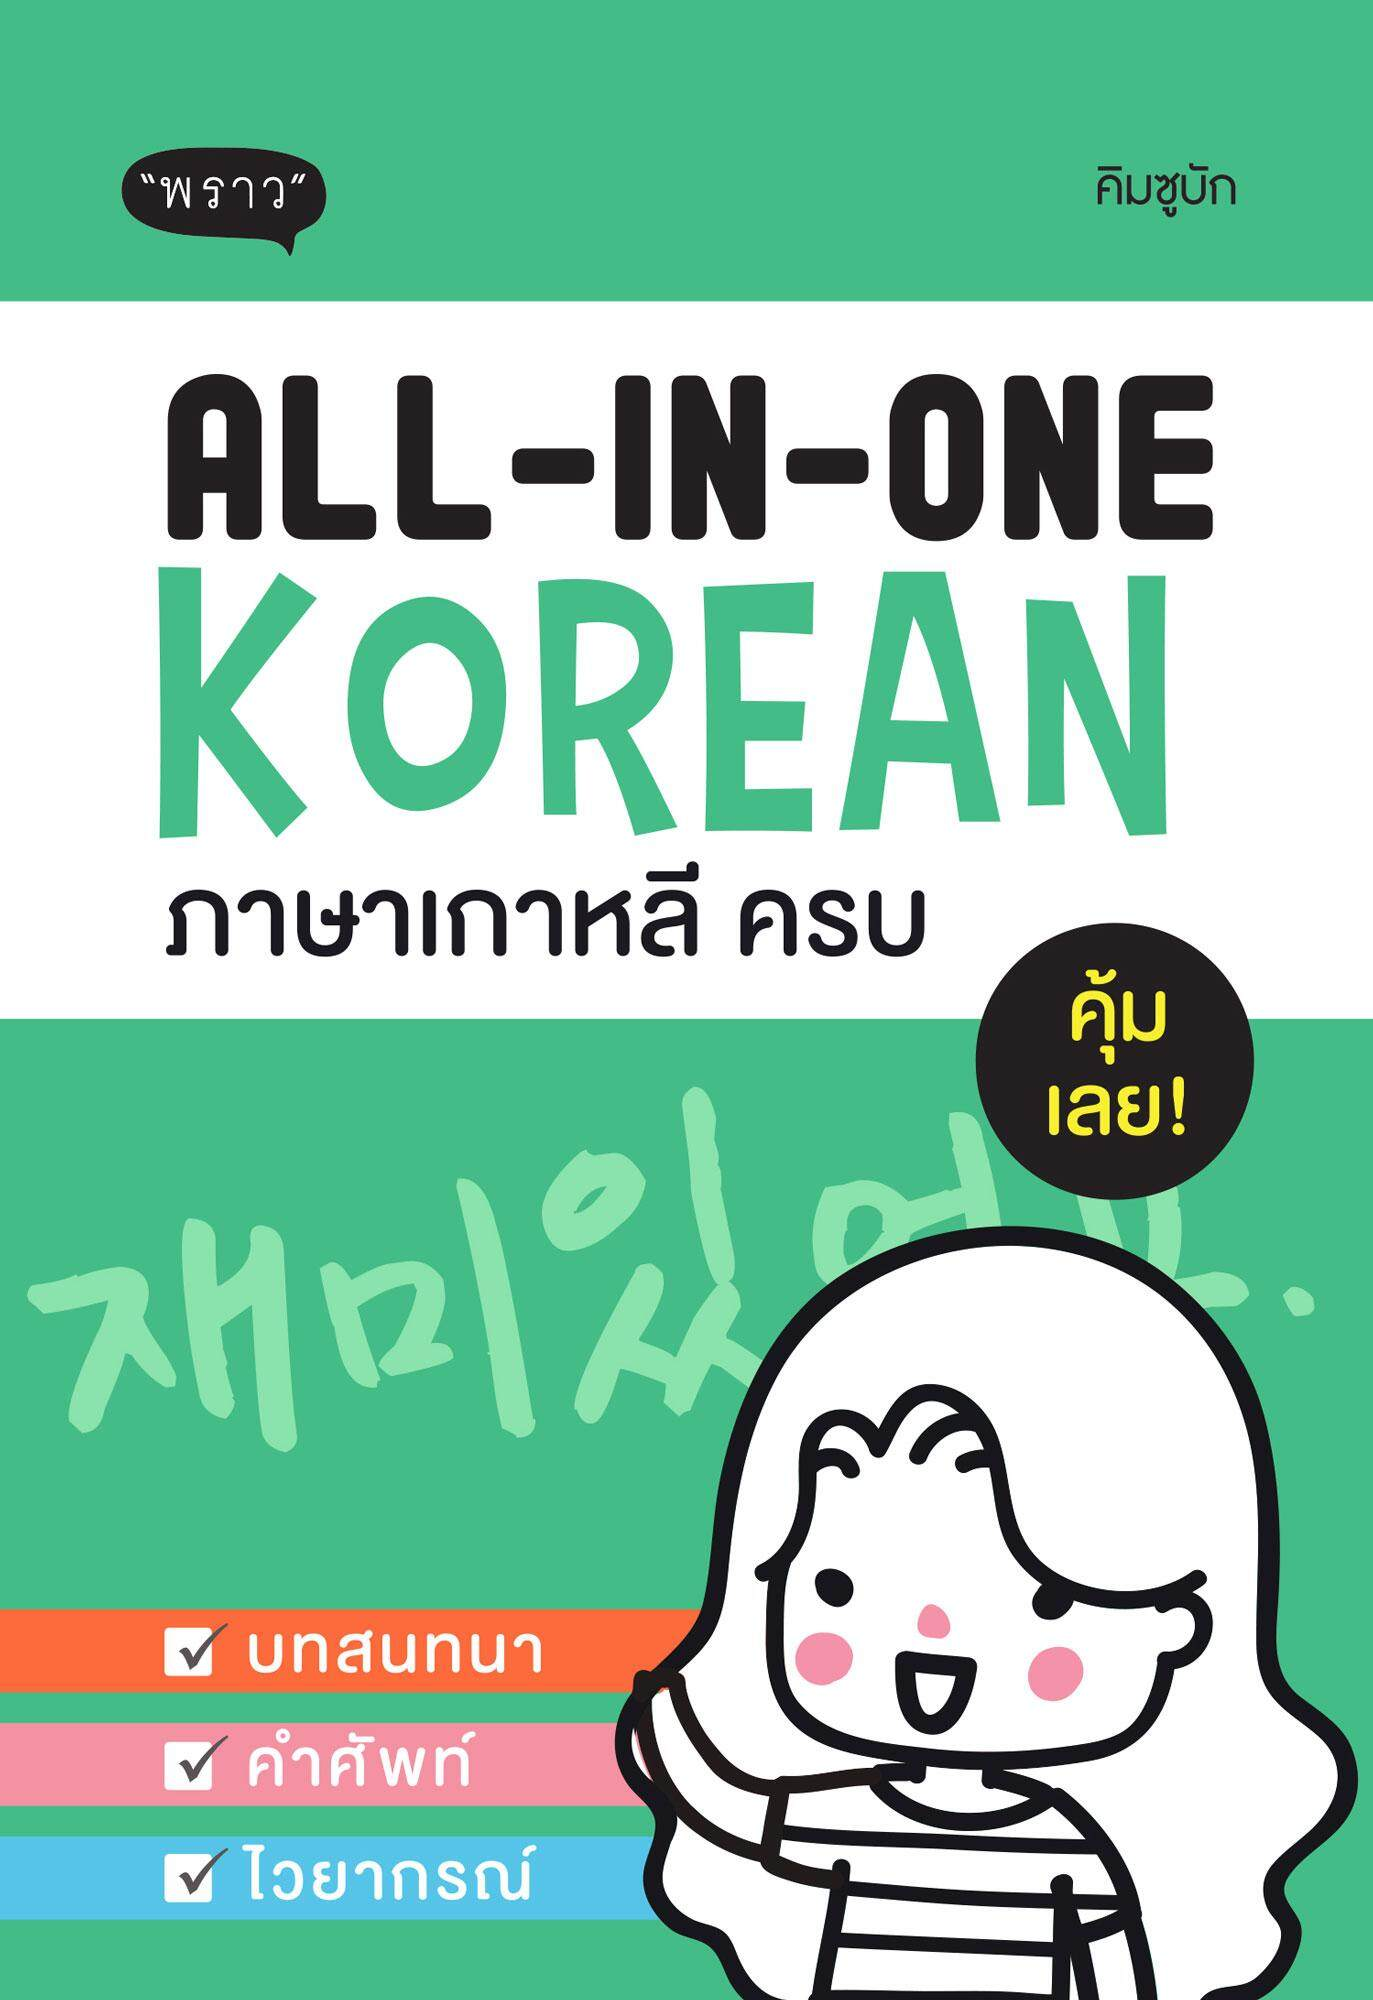 All-In-One Korean ภาษาเกาหลีครบ By Proud Products.